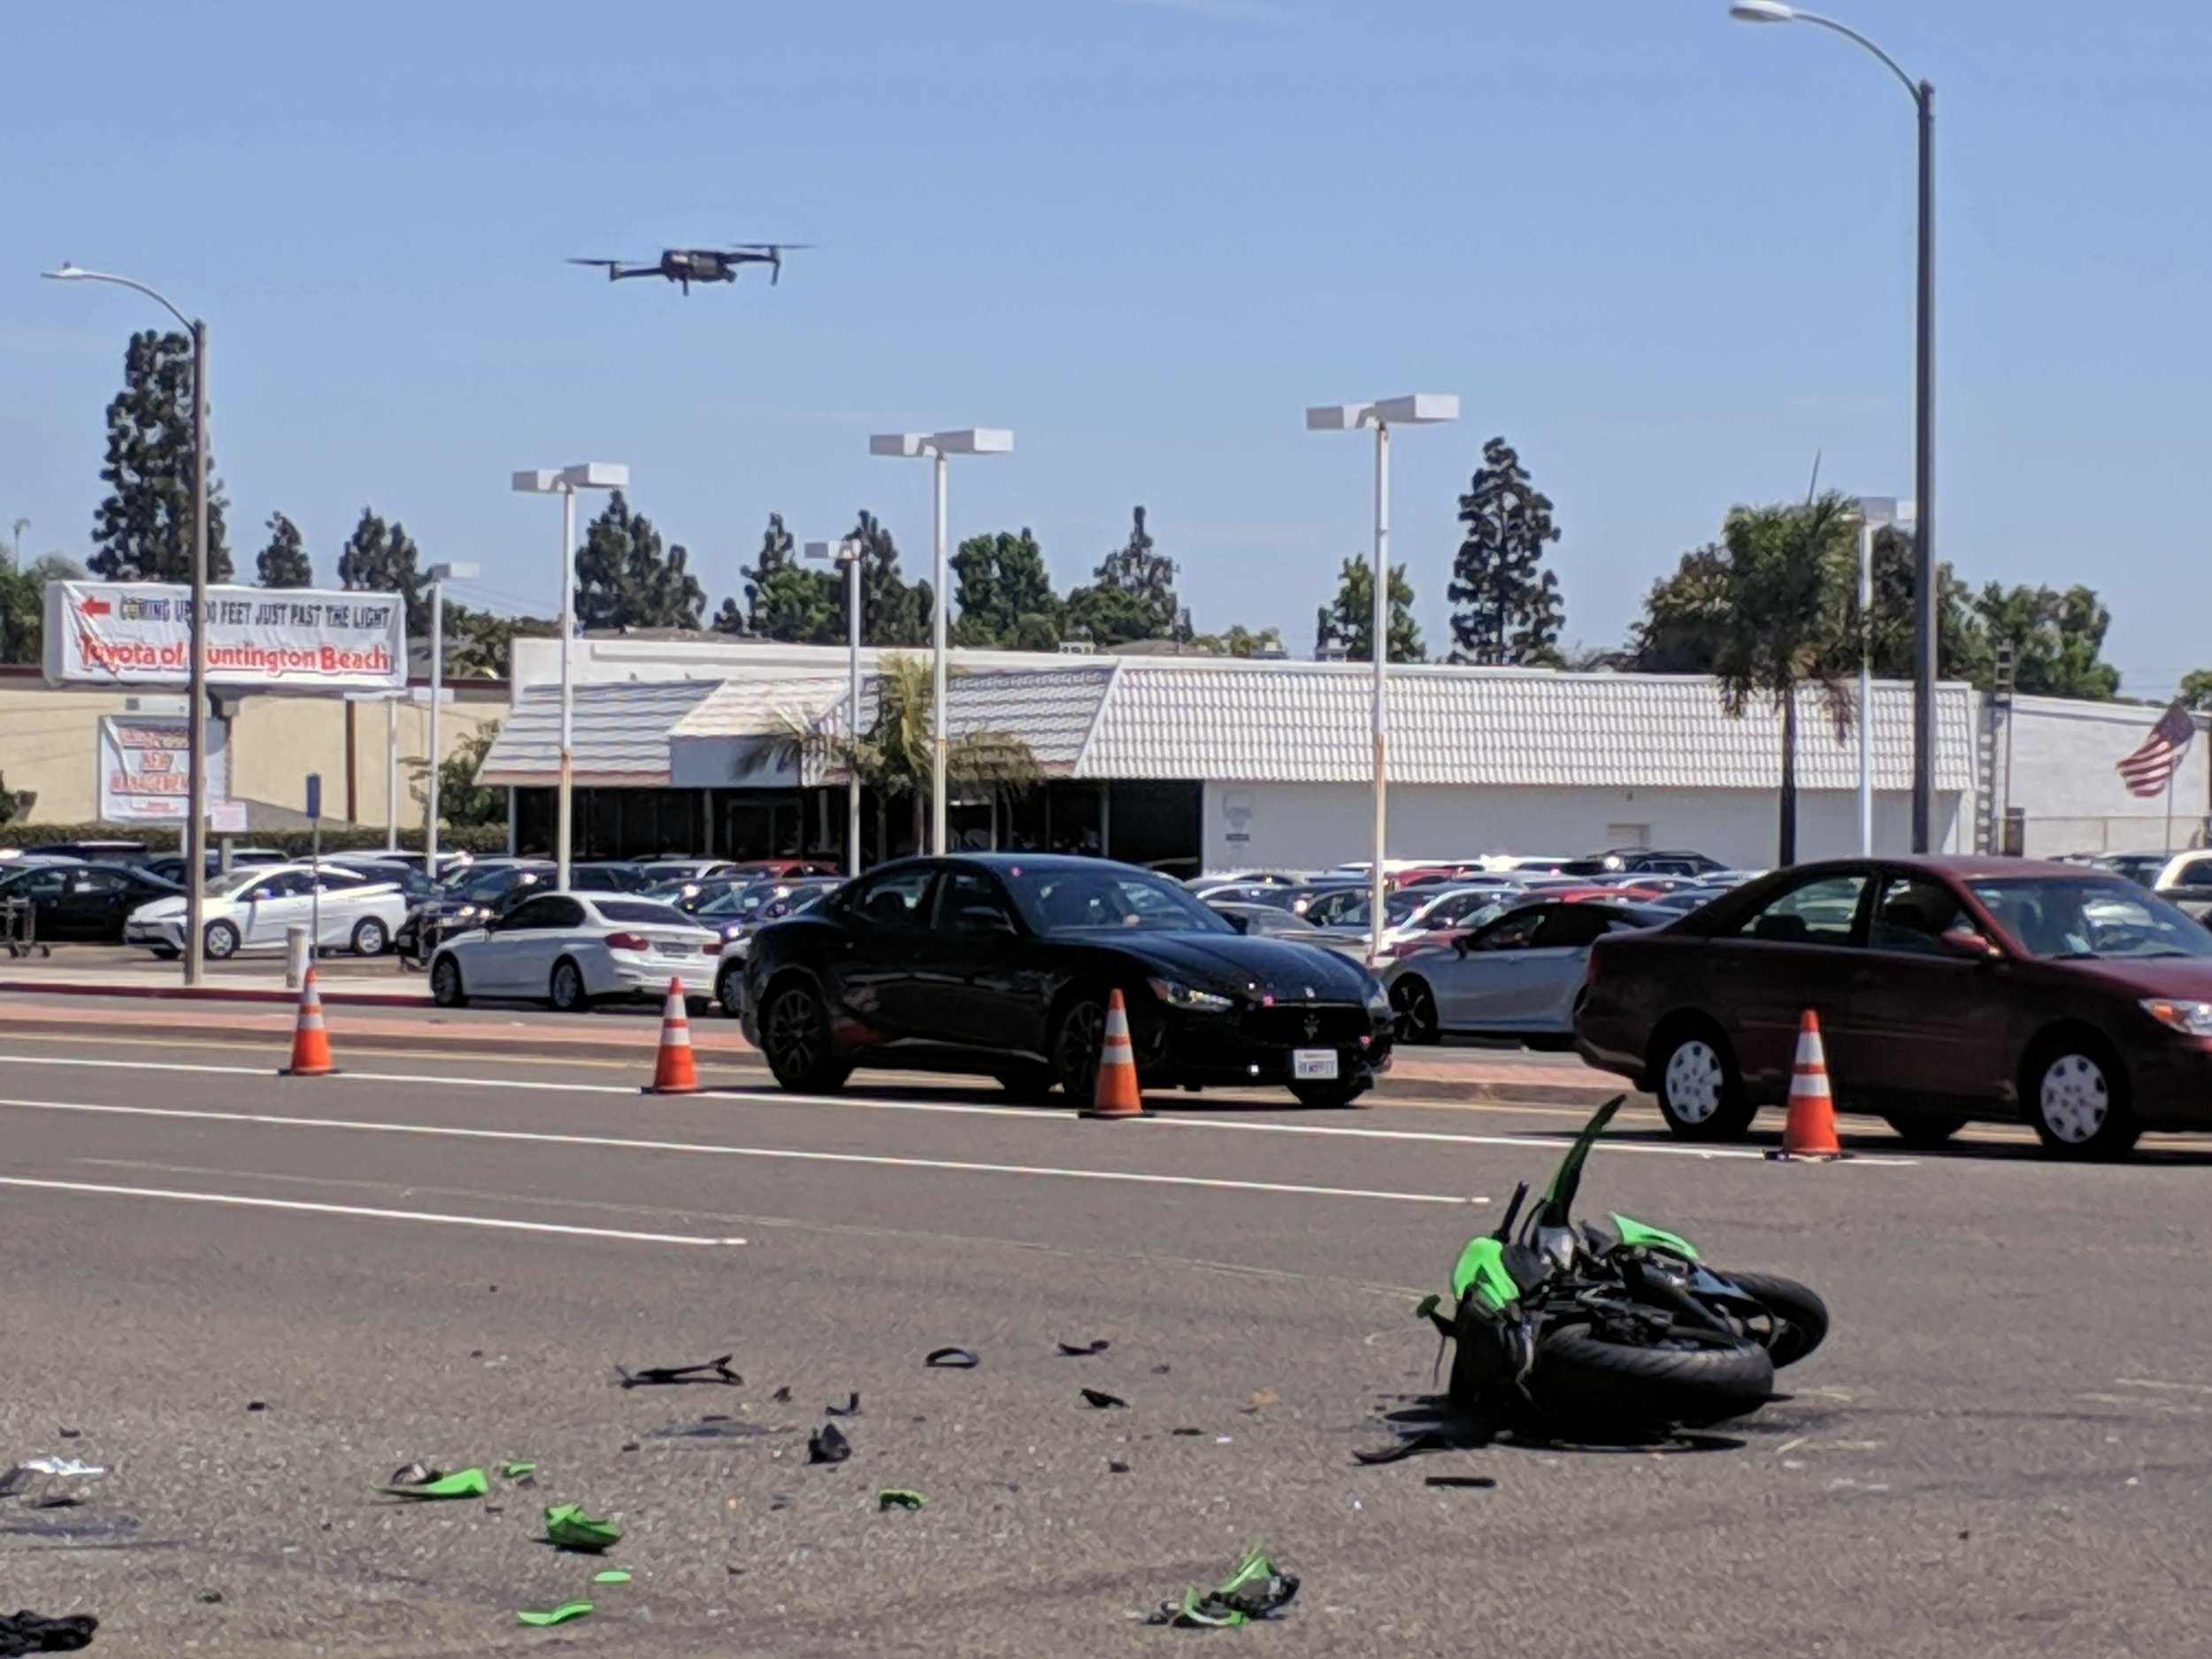 Fatal motorcycle collision being mapped out by a department flying SkyeBrowse